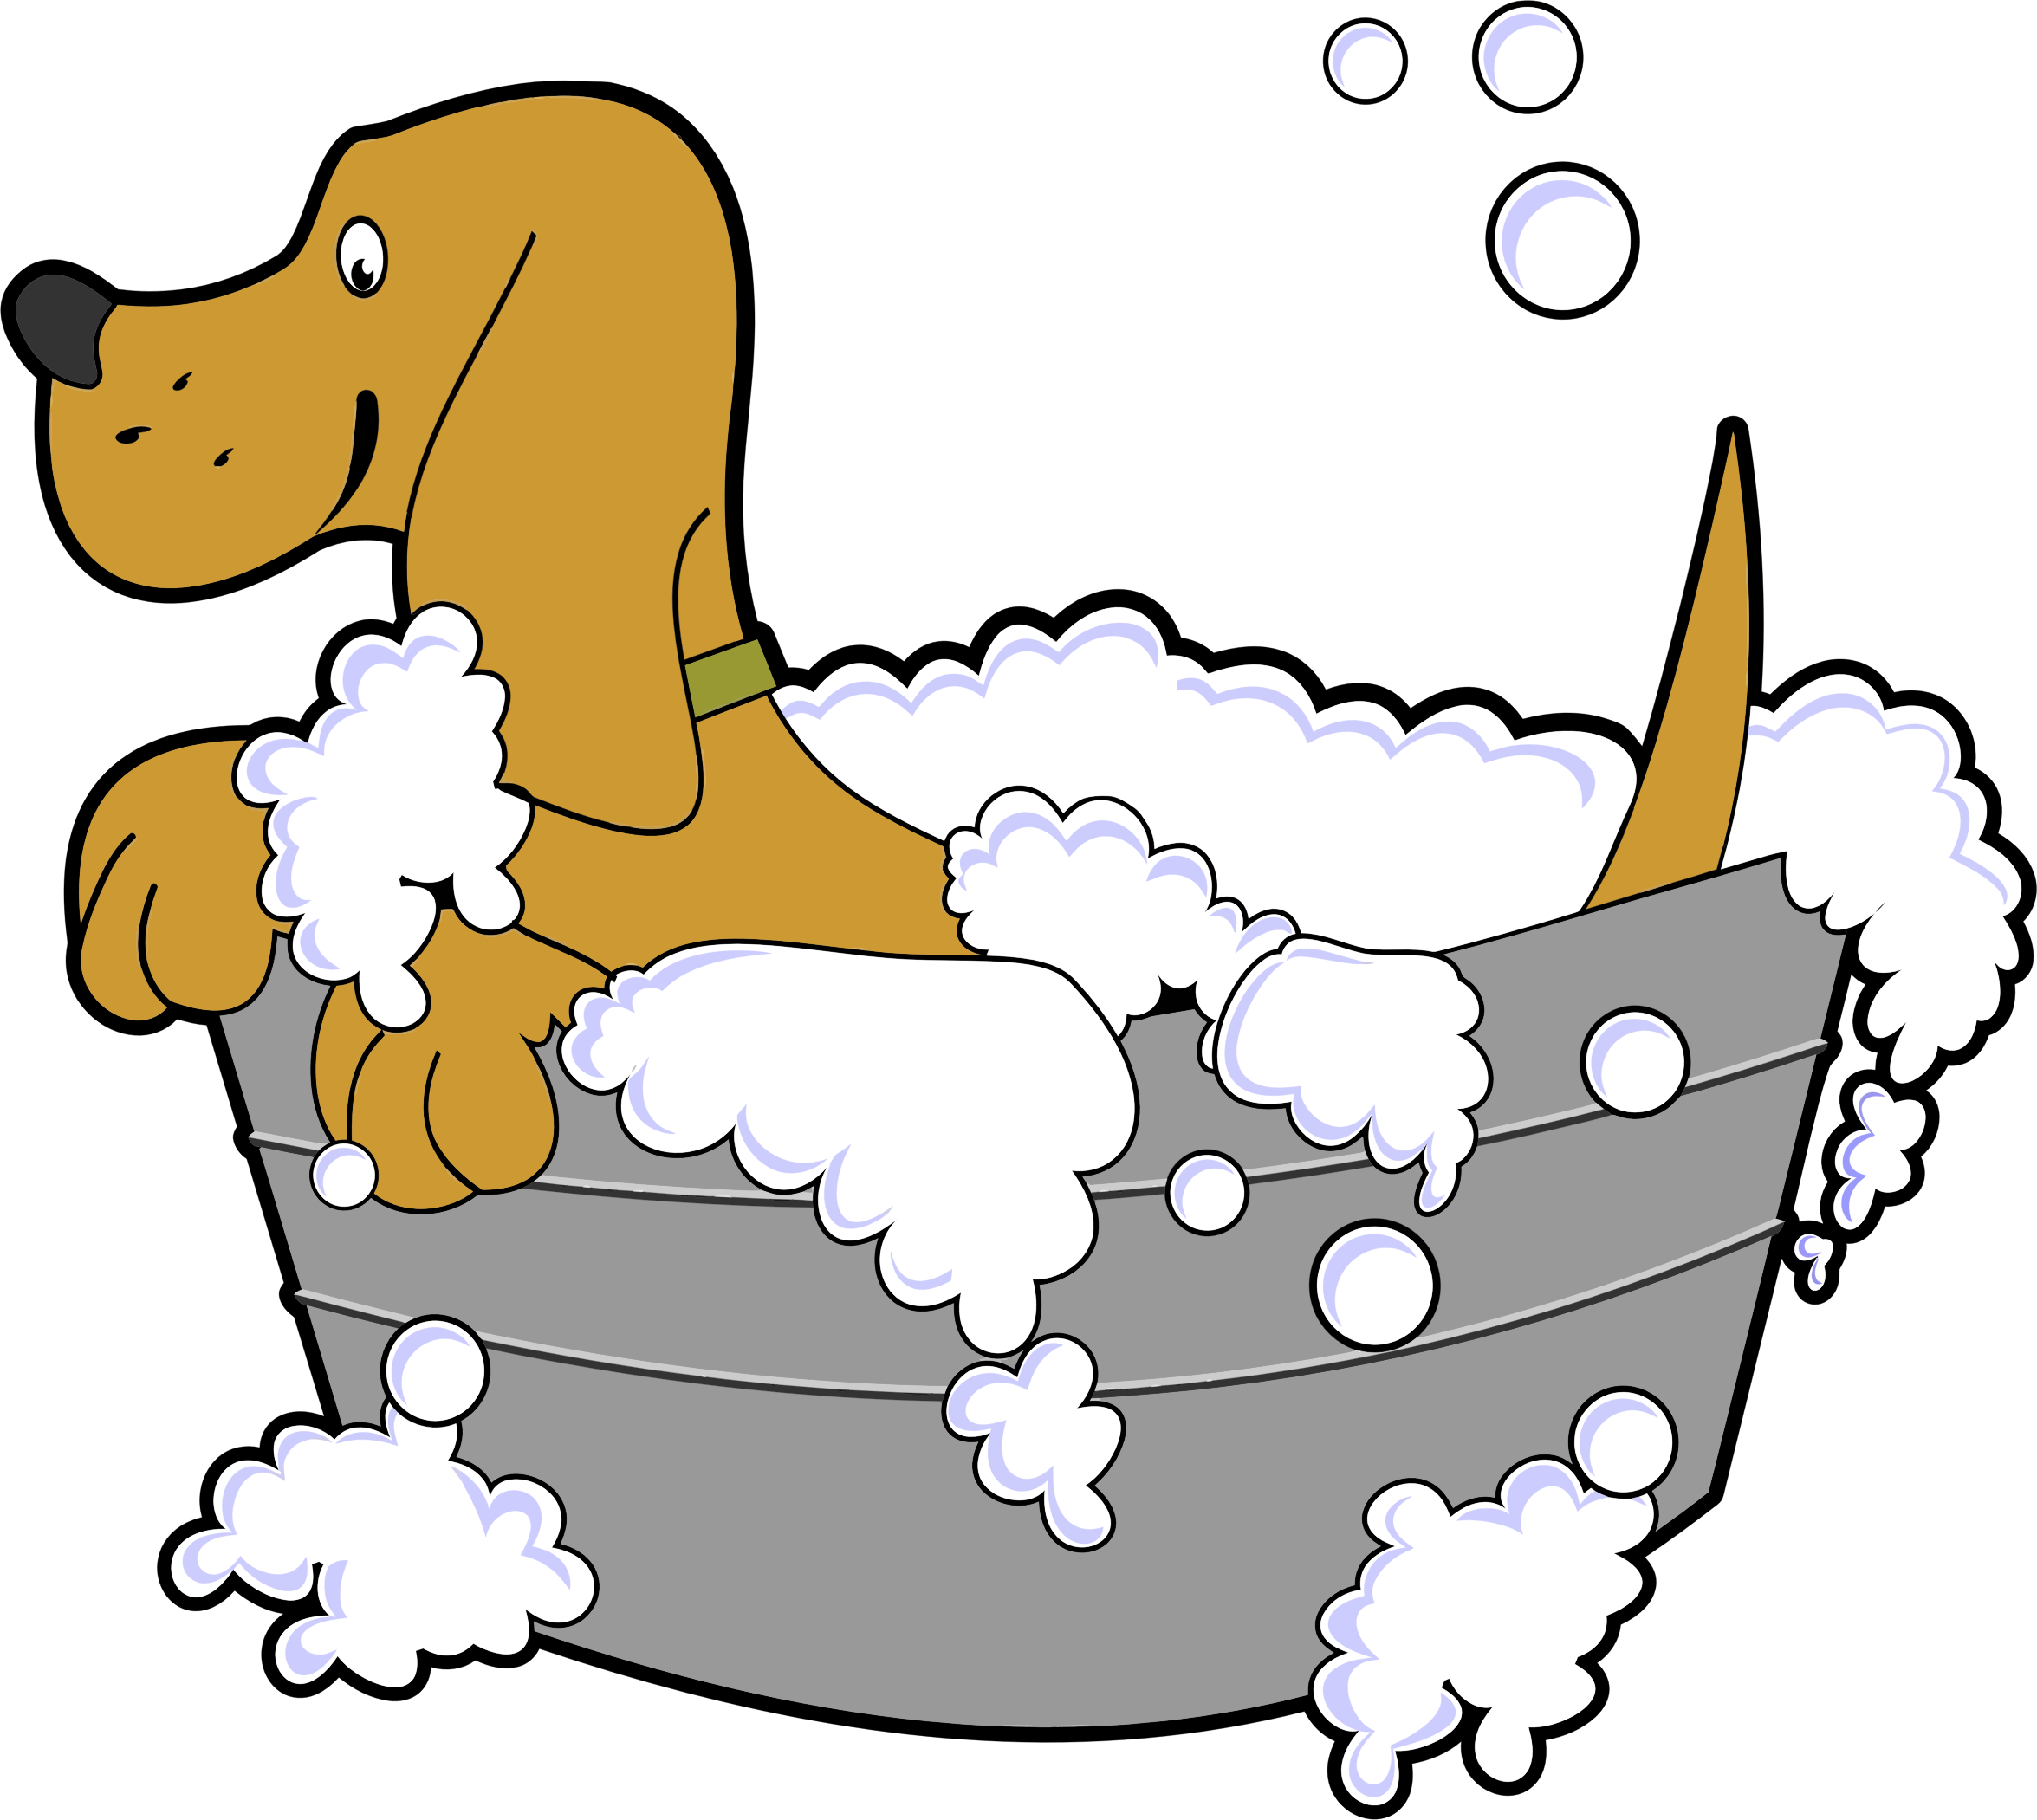 Dog In Washing Tub by GDJ